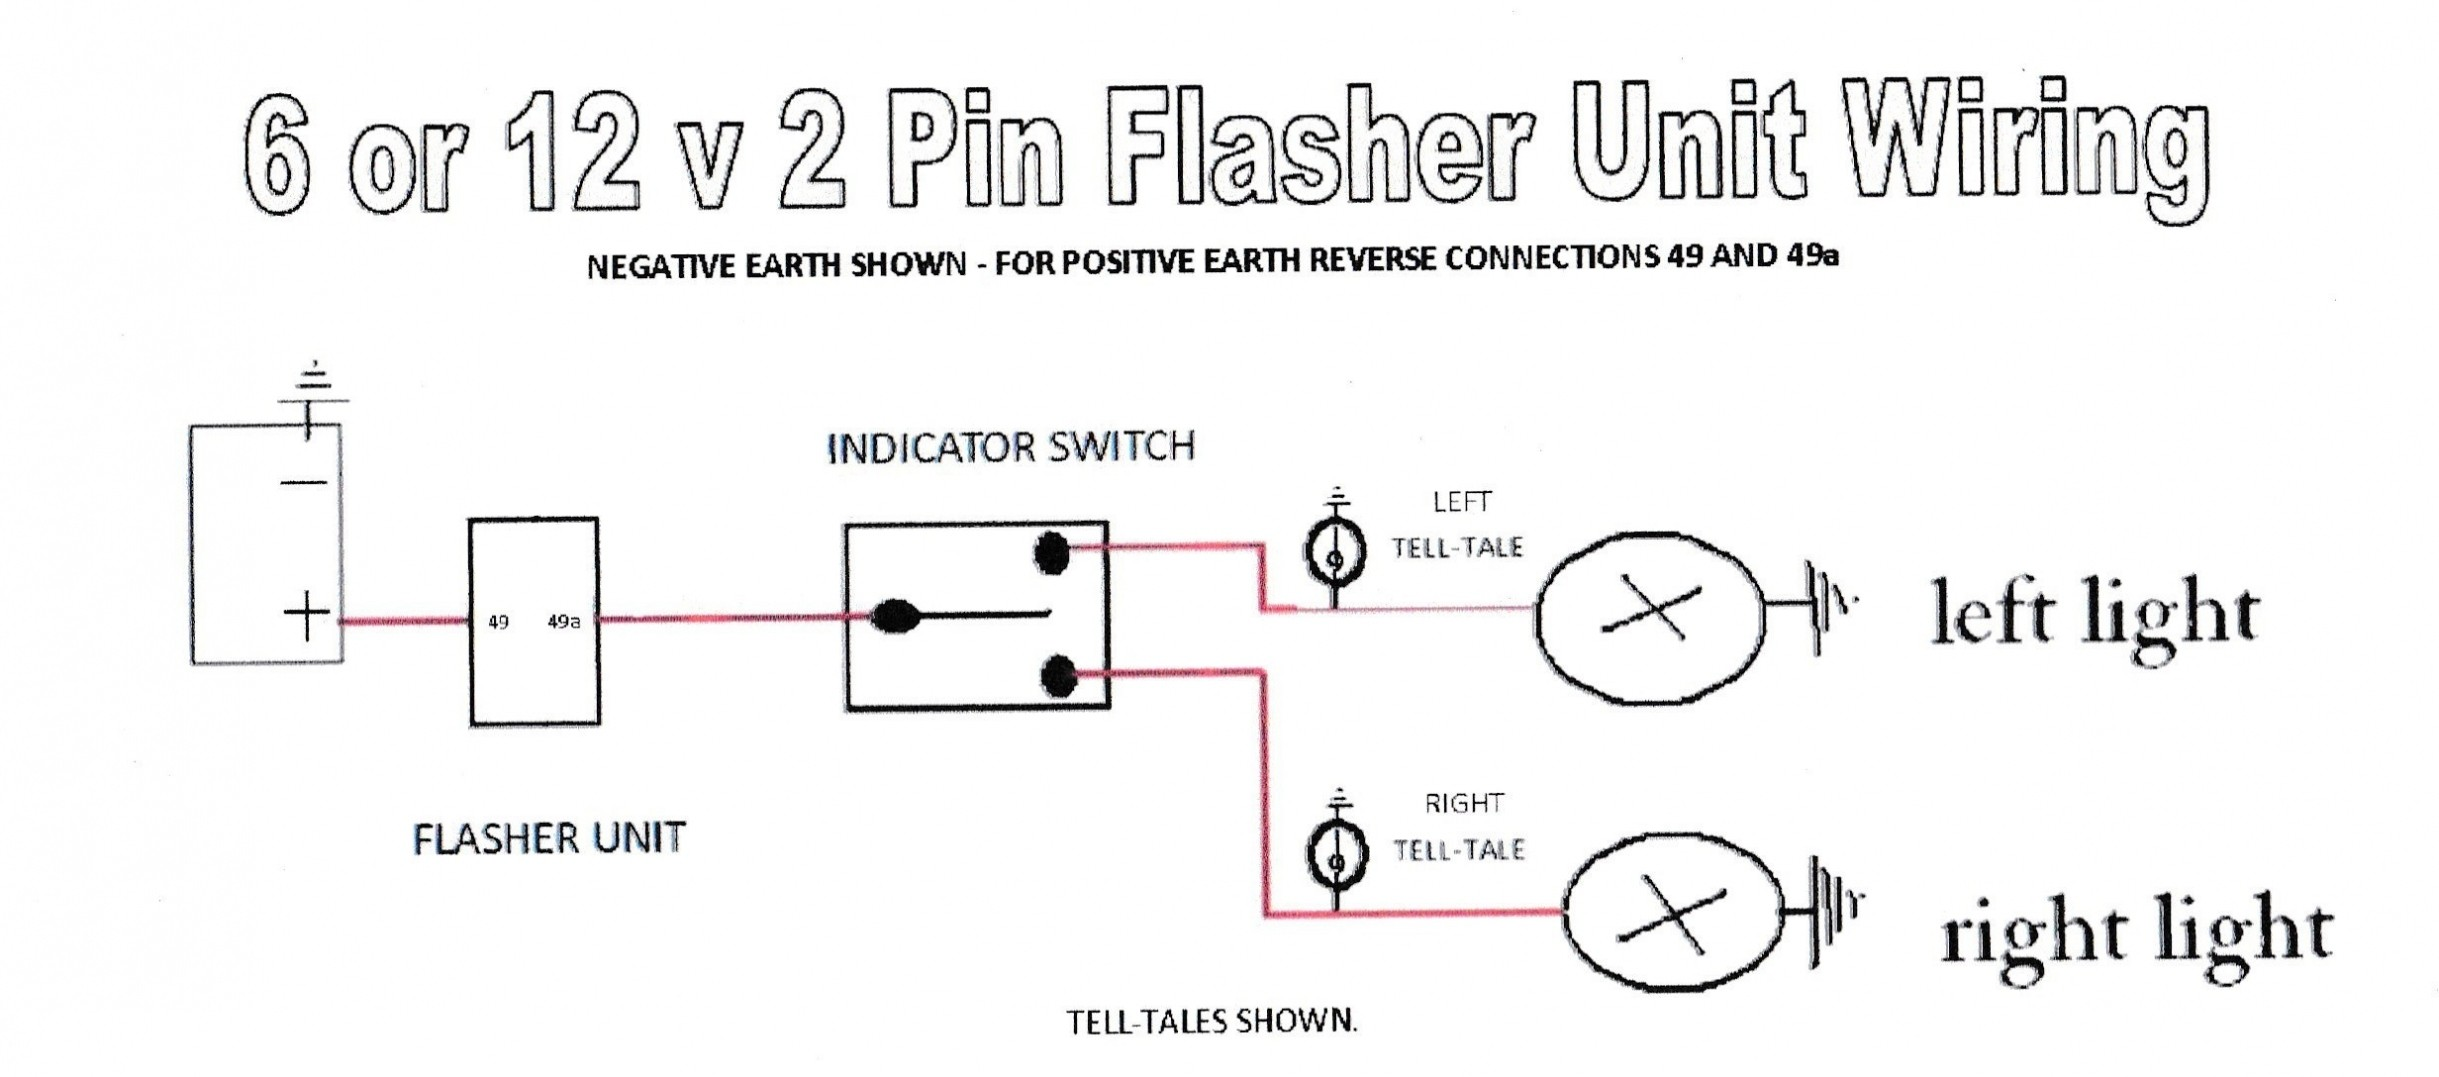 Wiring A 3 Prong Electronic Flasher Three Pole Flasher Wiring Diagram Diagram Base Website Of Wiring A 3 Prong Electronic Flasher